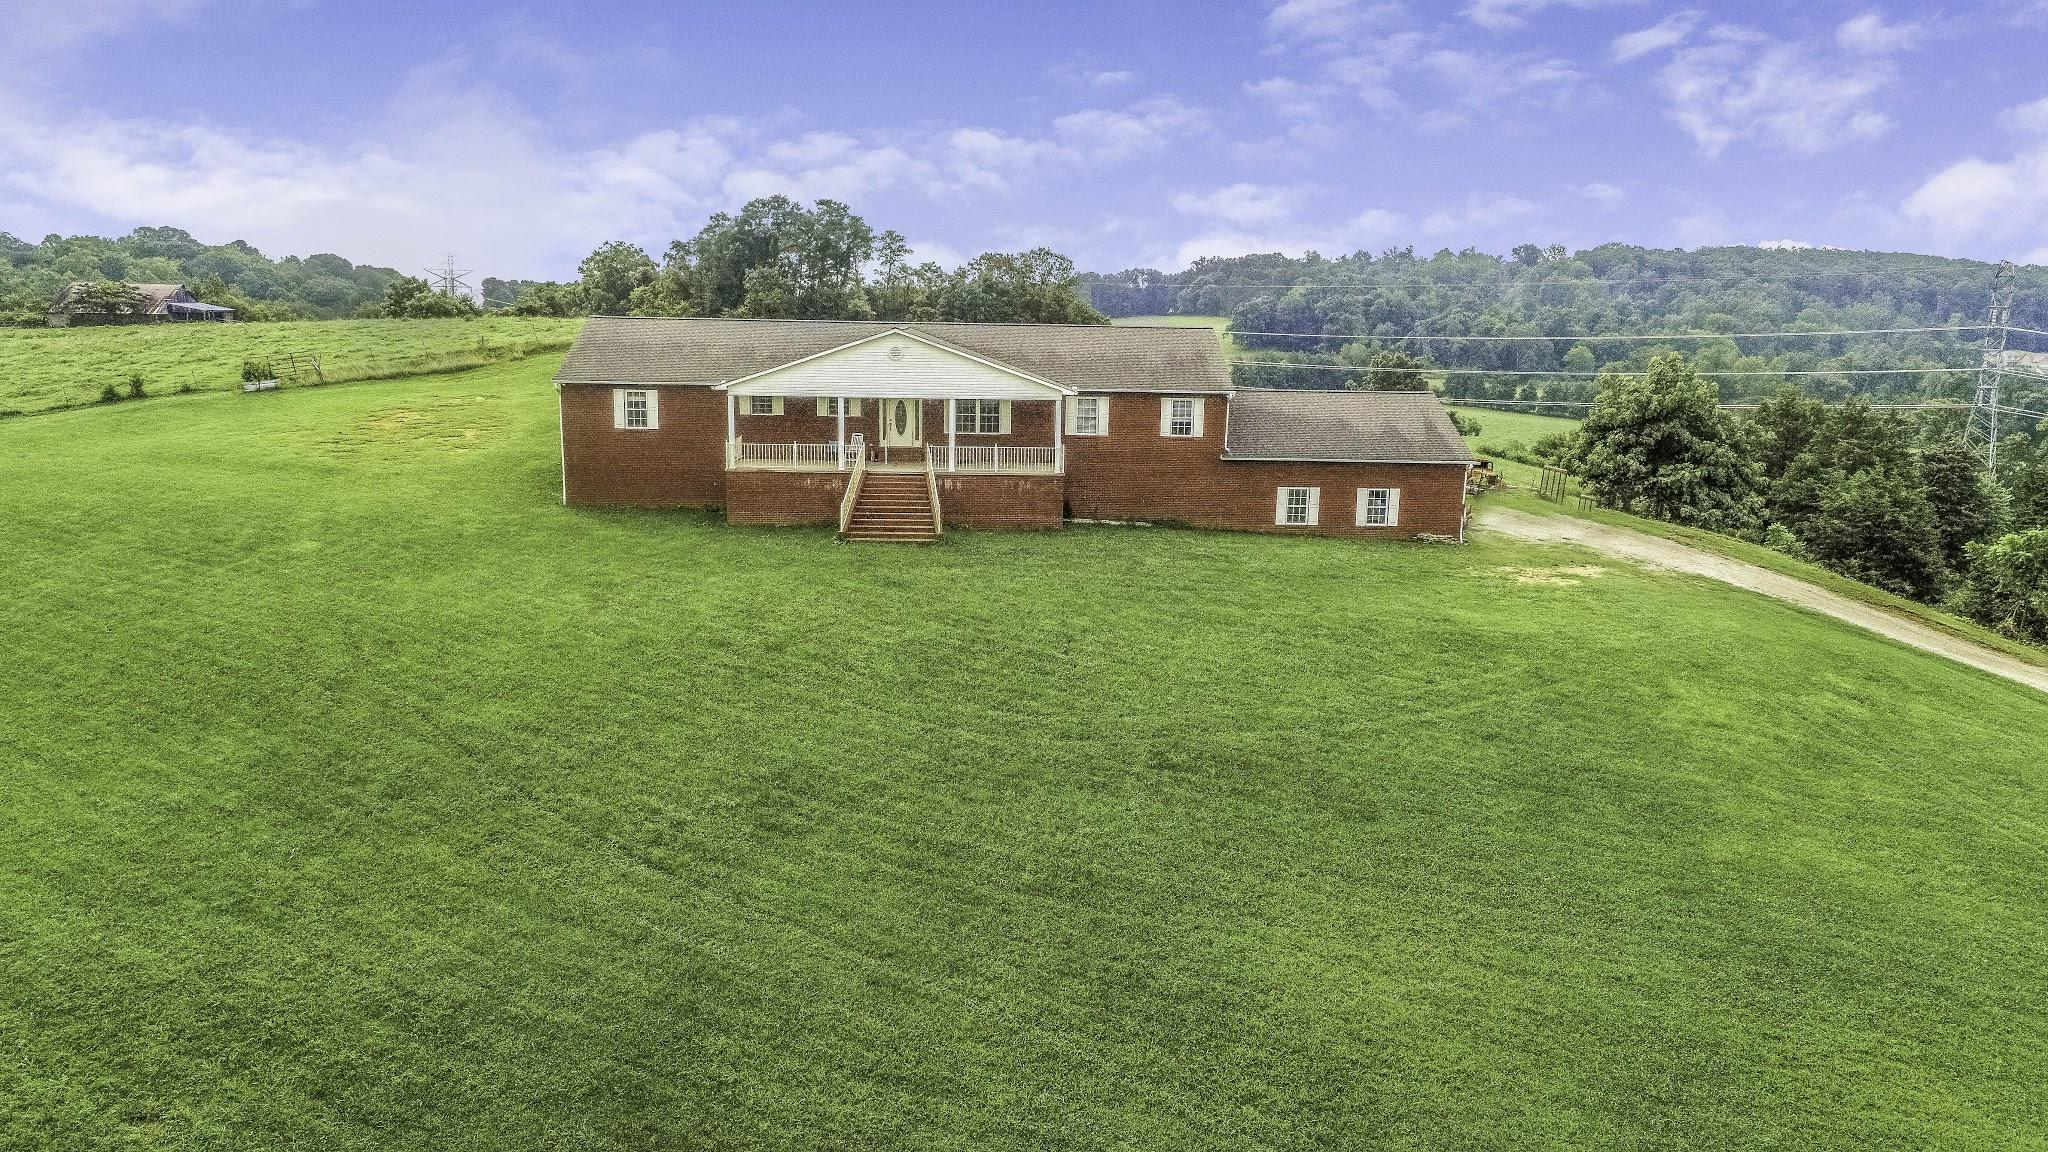 7005 Fairview Rd, Corryton, Tennessee 37721, 3 Bedrooms Bedrooms, ,4 BathroomsBathrooms,Single Family,For Sale,Fairview,1088497